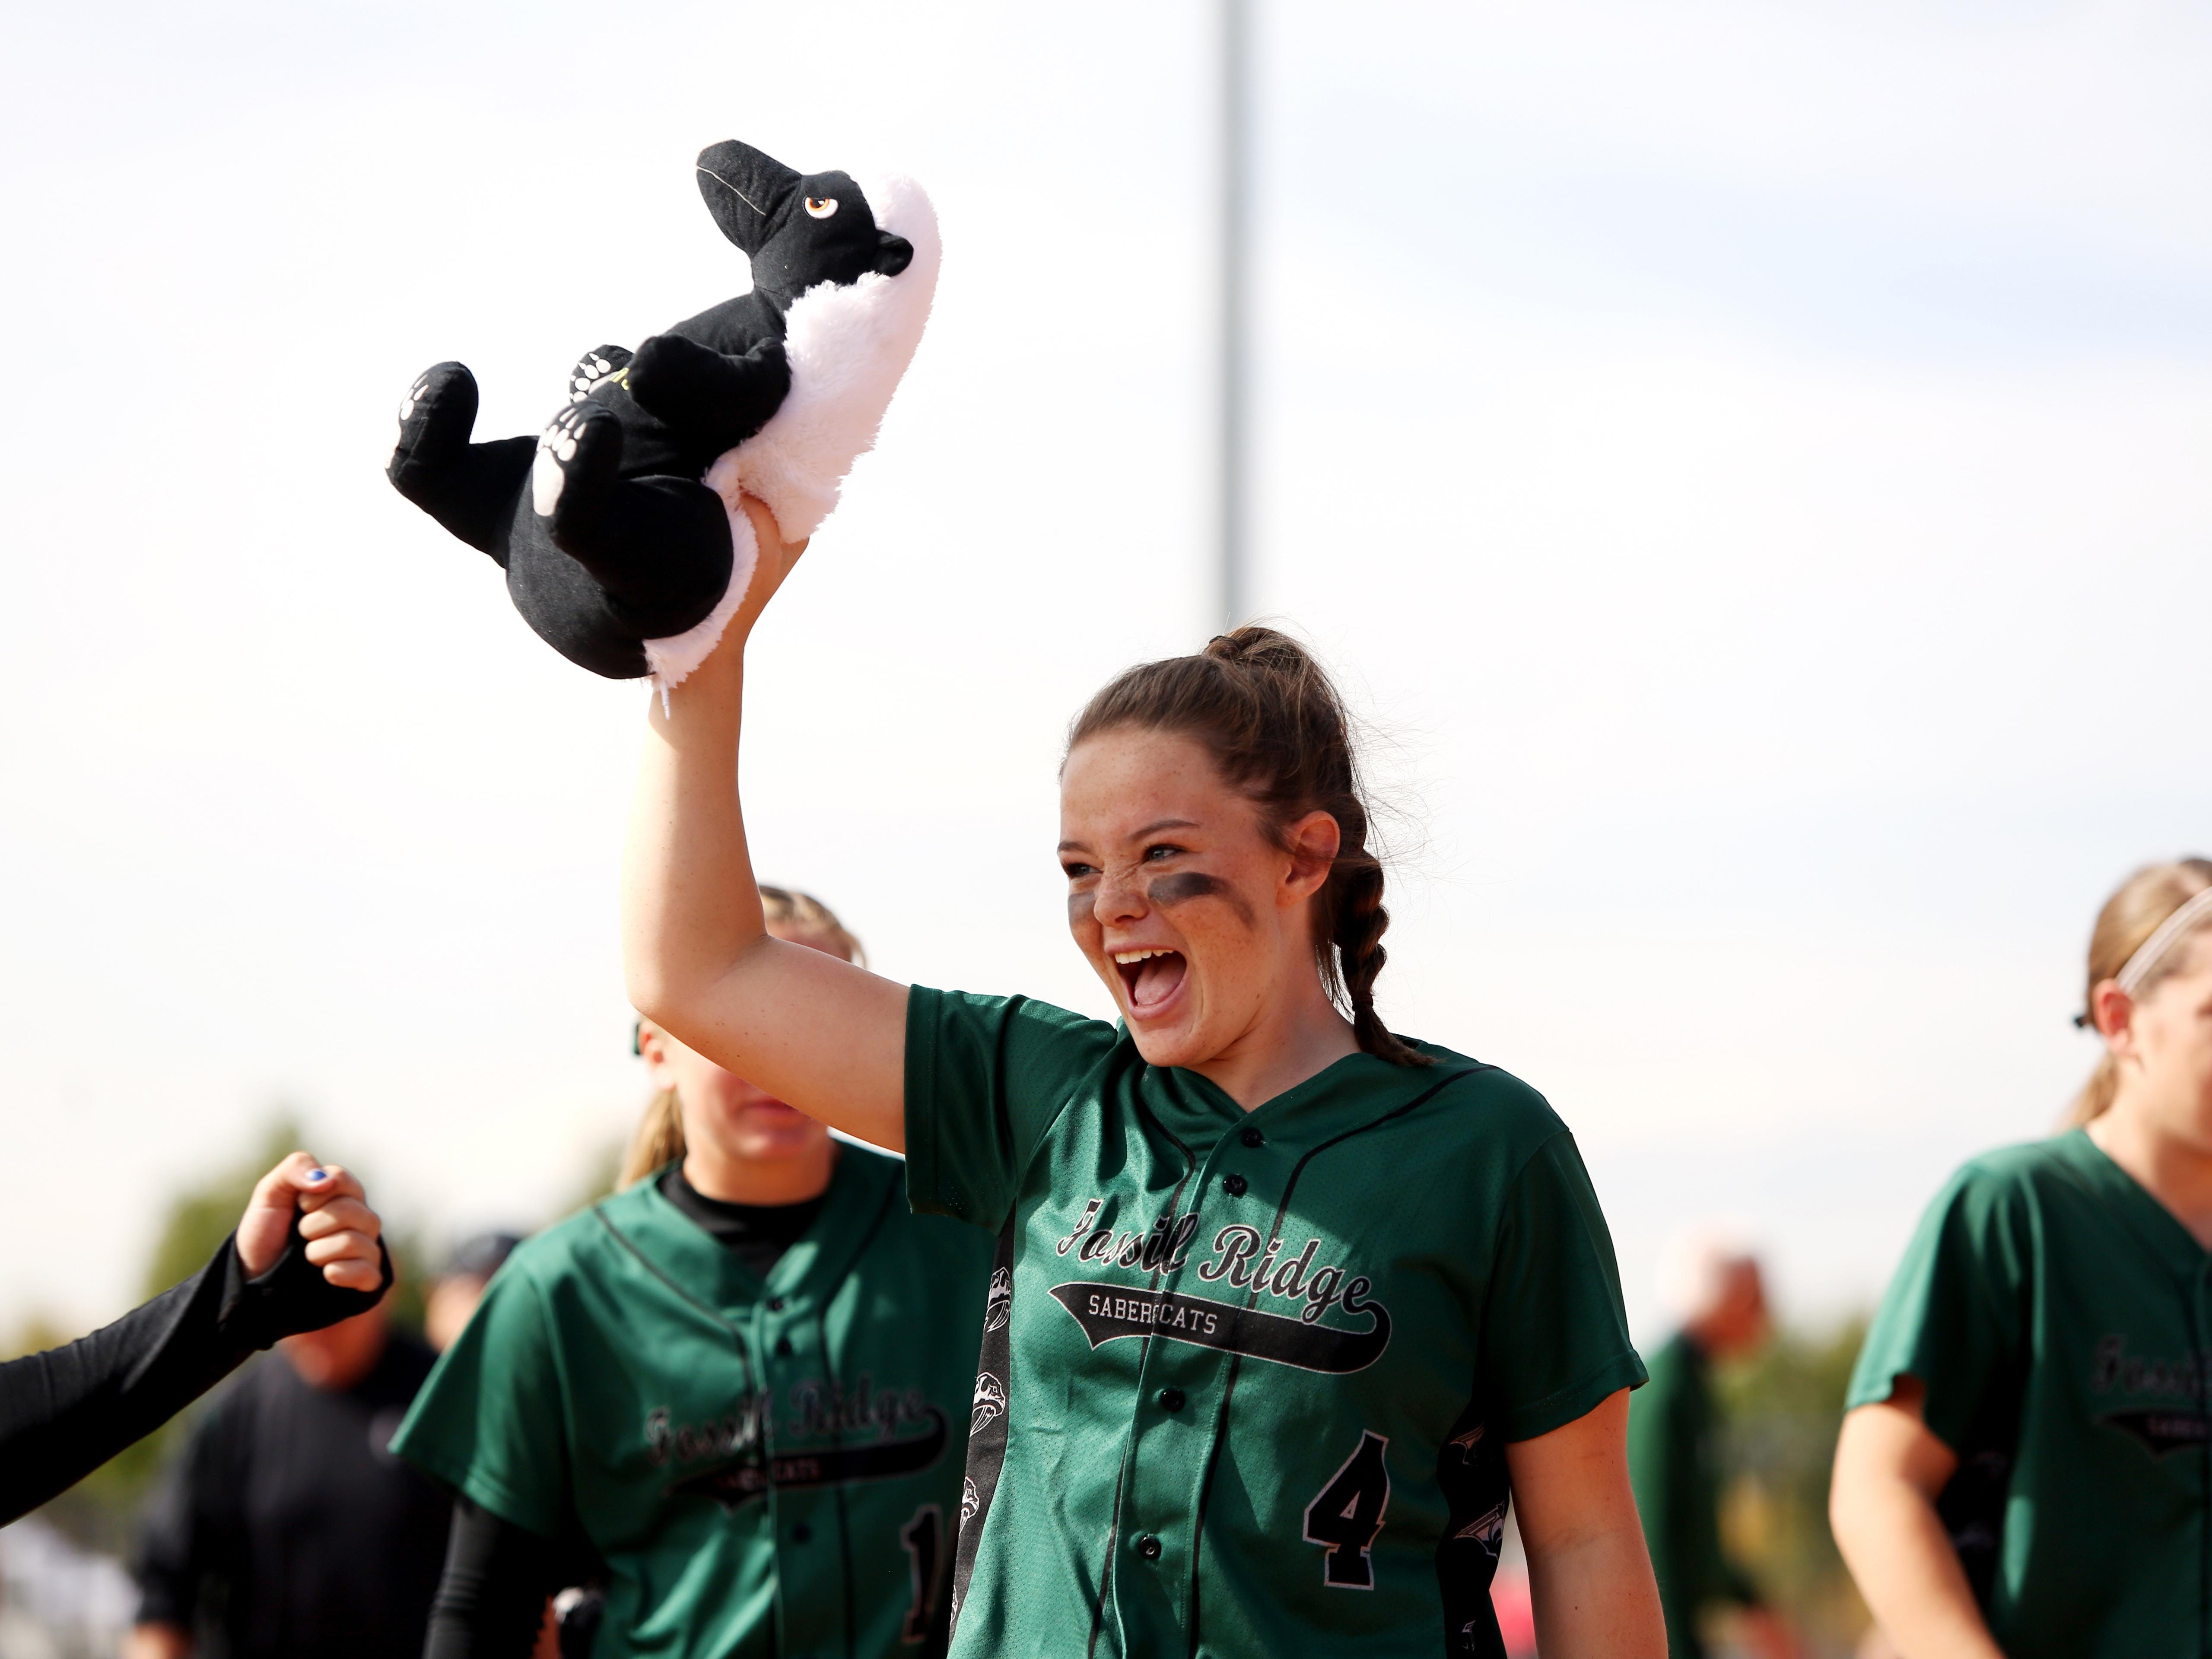 Fossil Ridge's Haley Donaldson is second in Colorado with a .750 batting average after missing almost all of 2014 with a torn ACL.